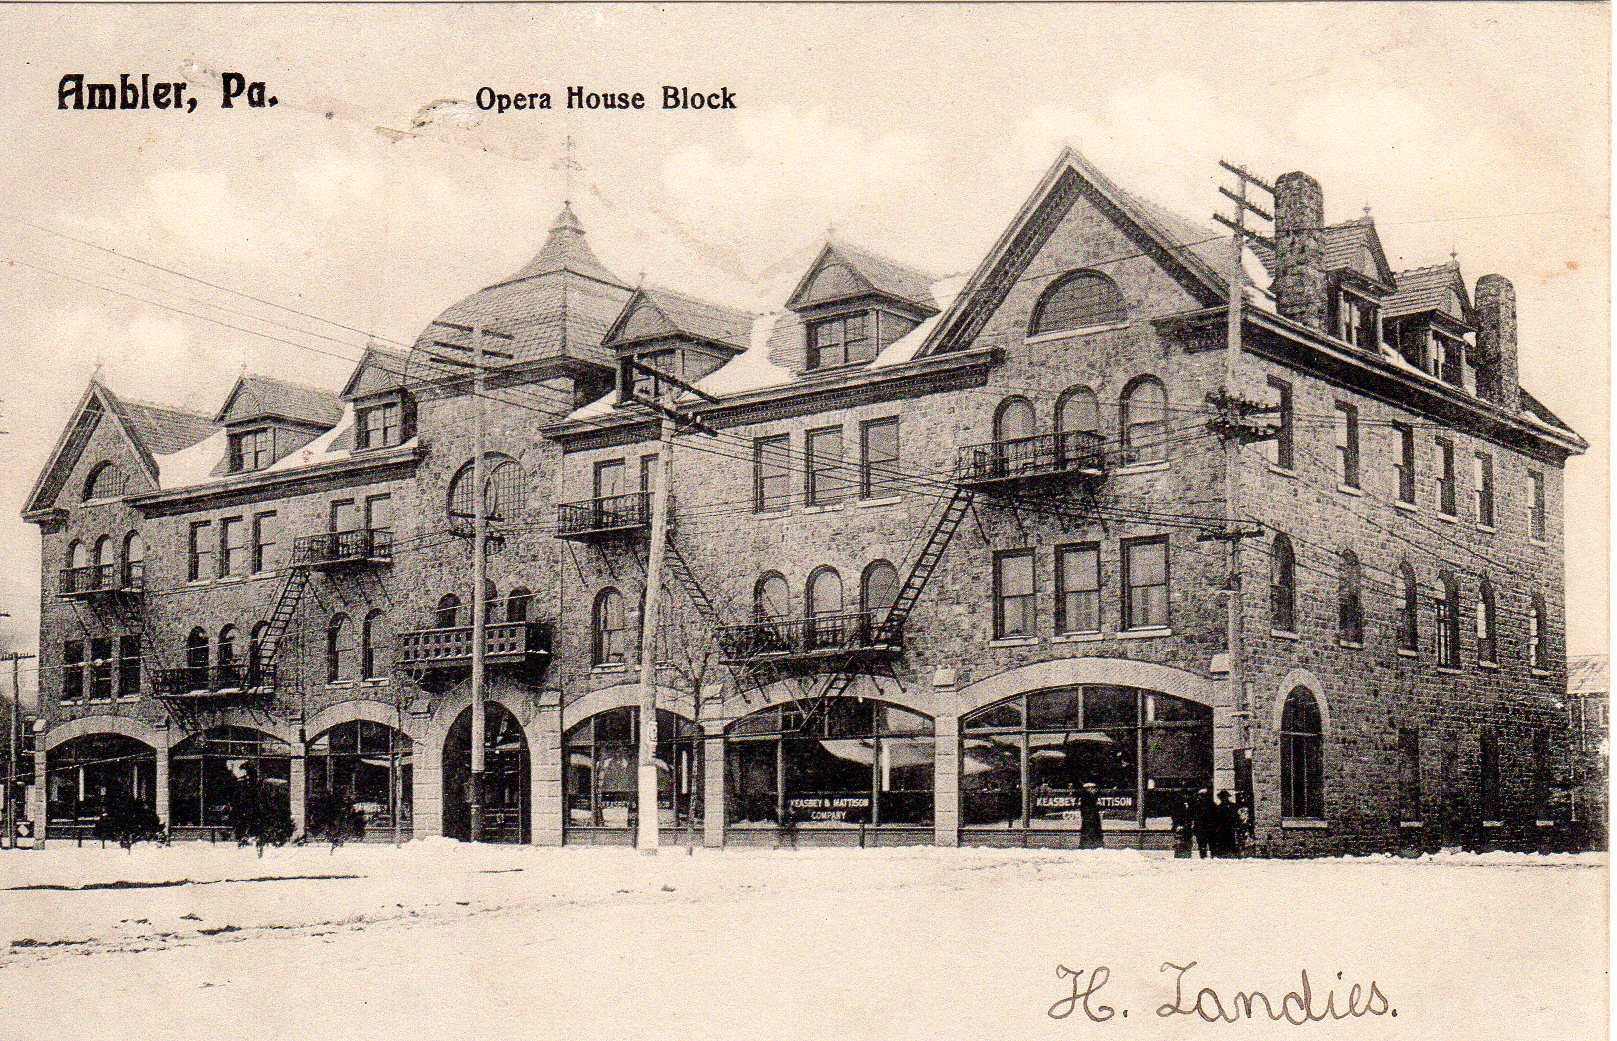 Post Card Collection (E Simon)_2682_54_Opera House Block, Ambler, Pa